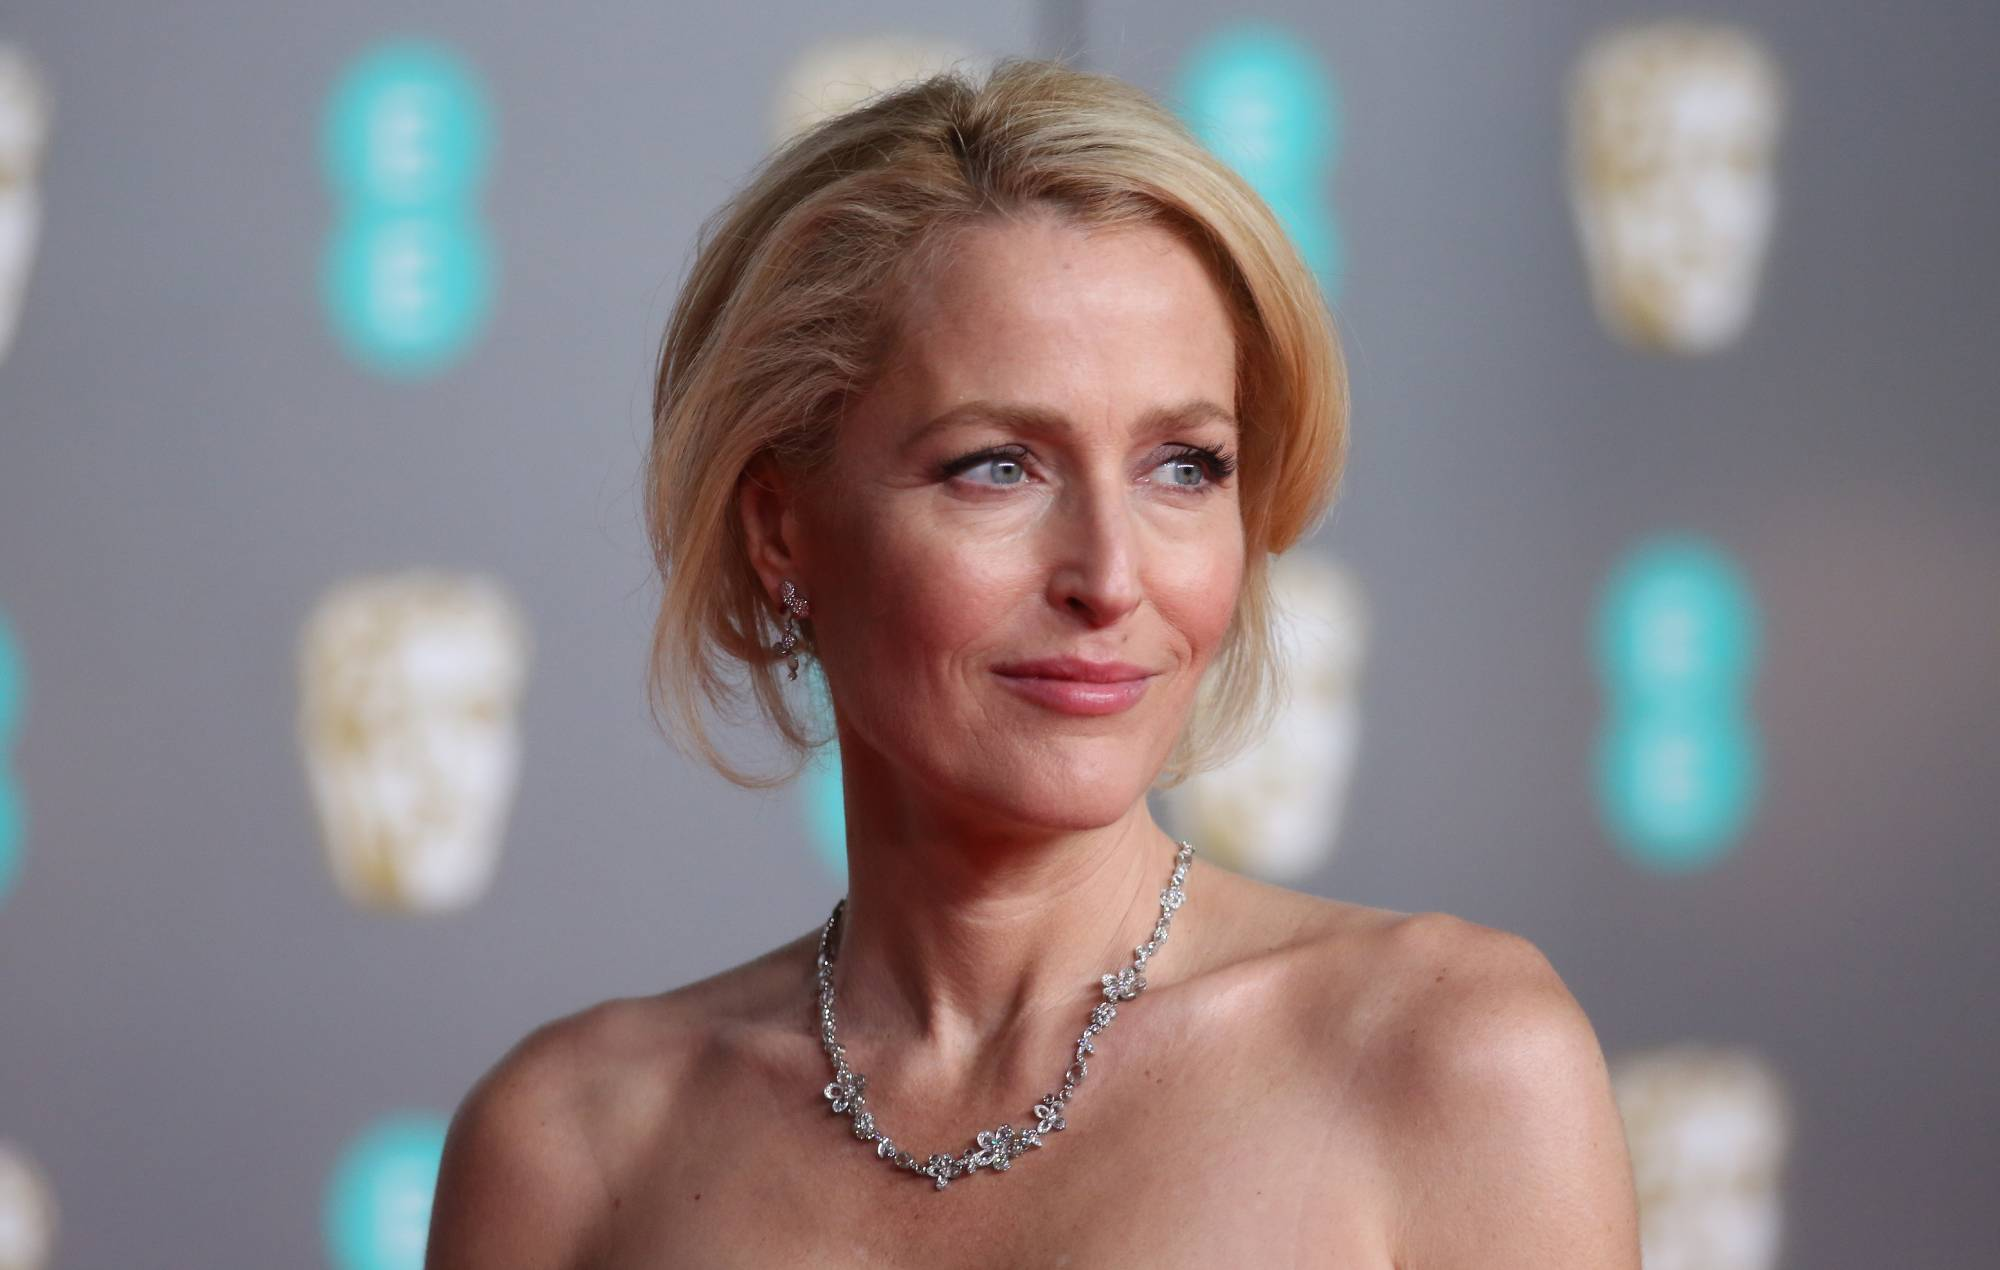 ENTERTAINMENT: Gillian Anderson hints at fourth season of 'The Fall'